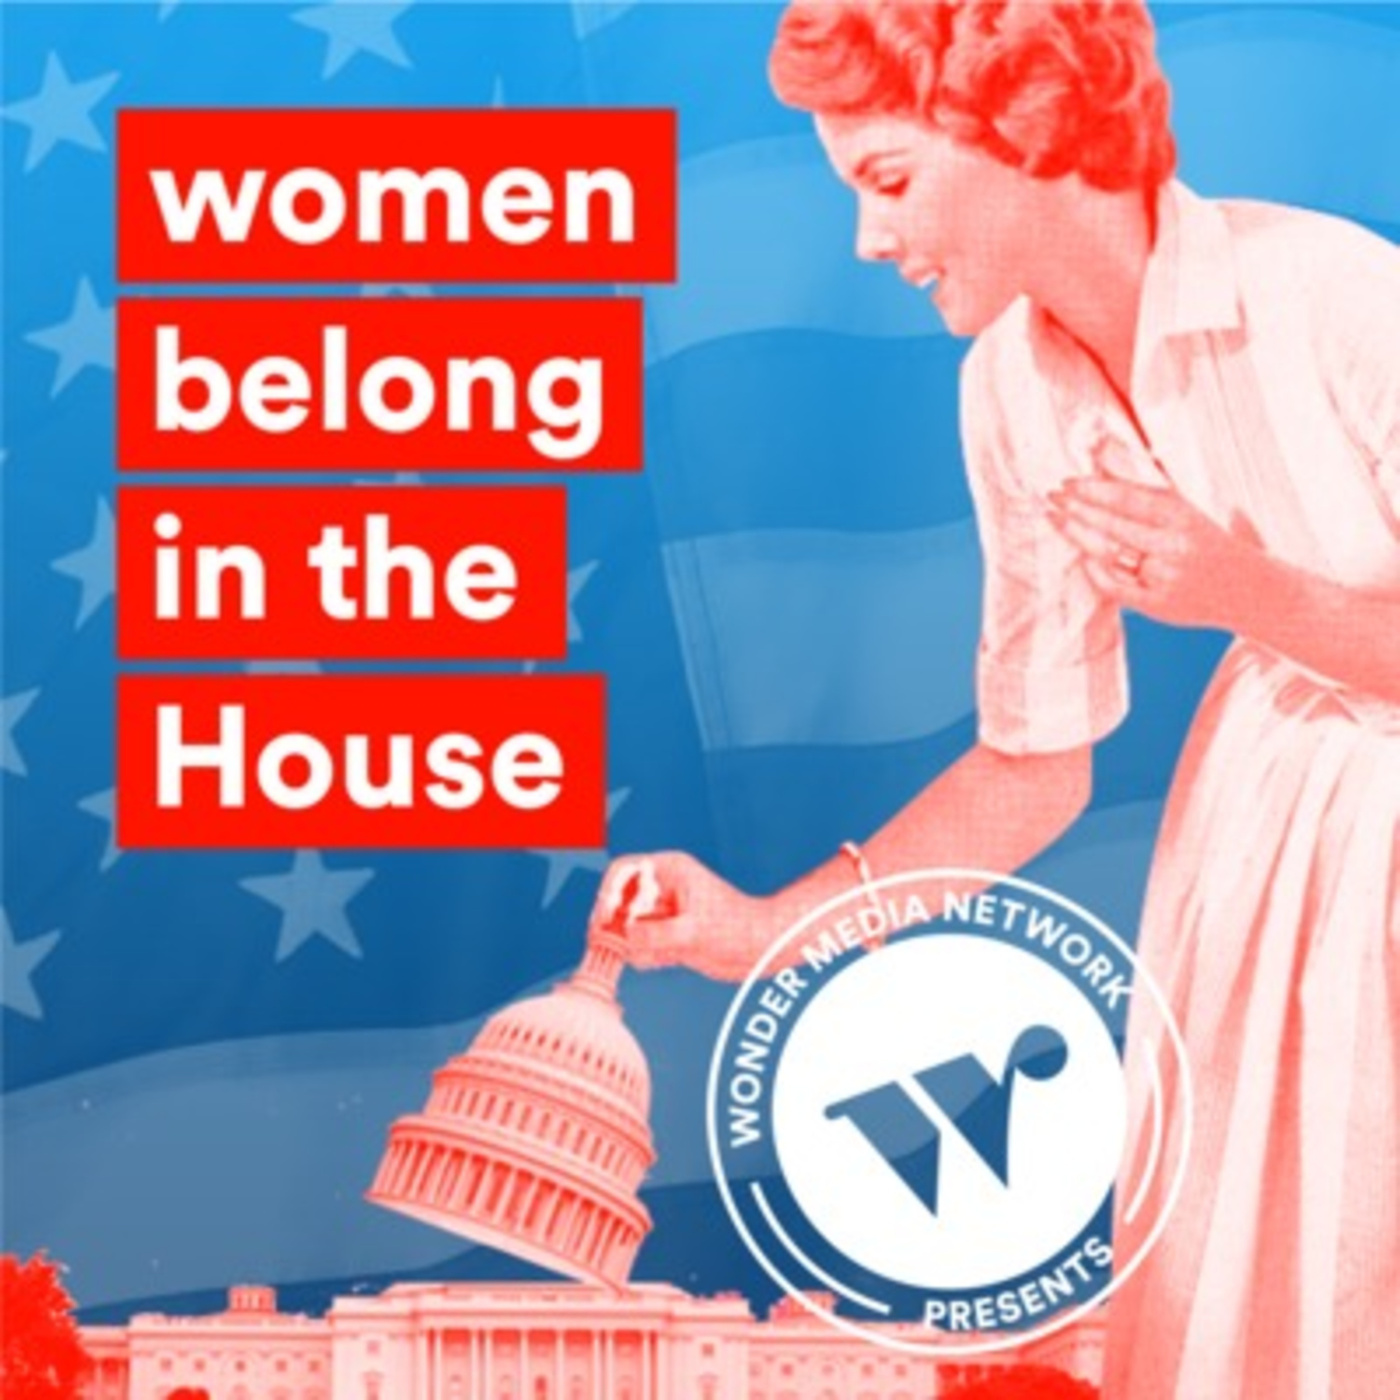 Trailer: Welcome to Women belong in the House!